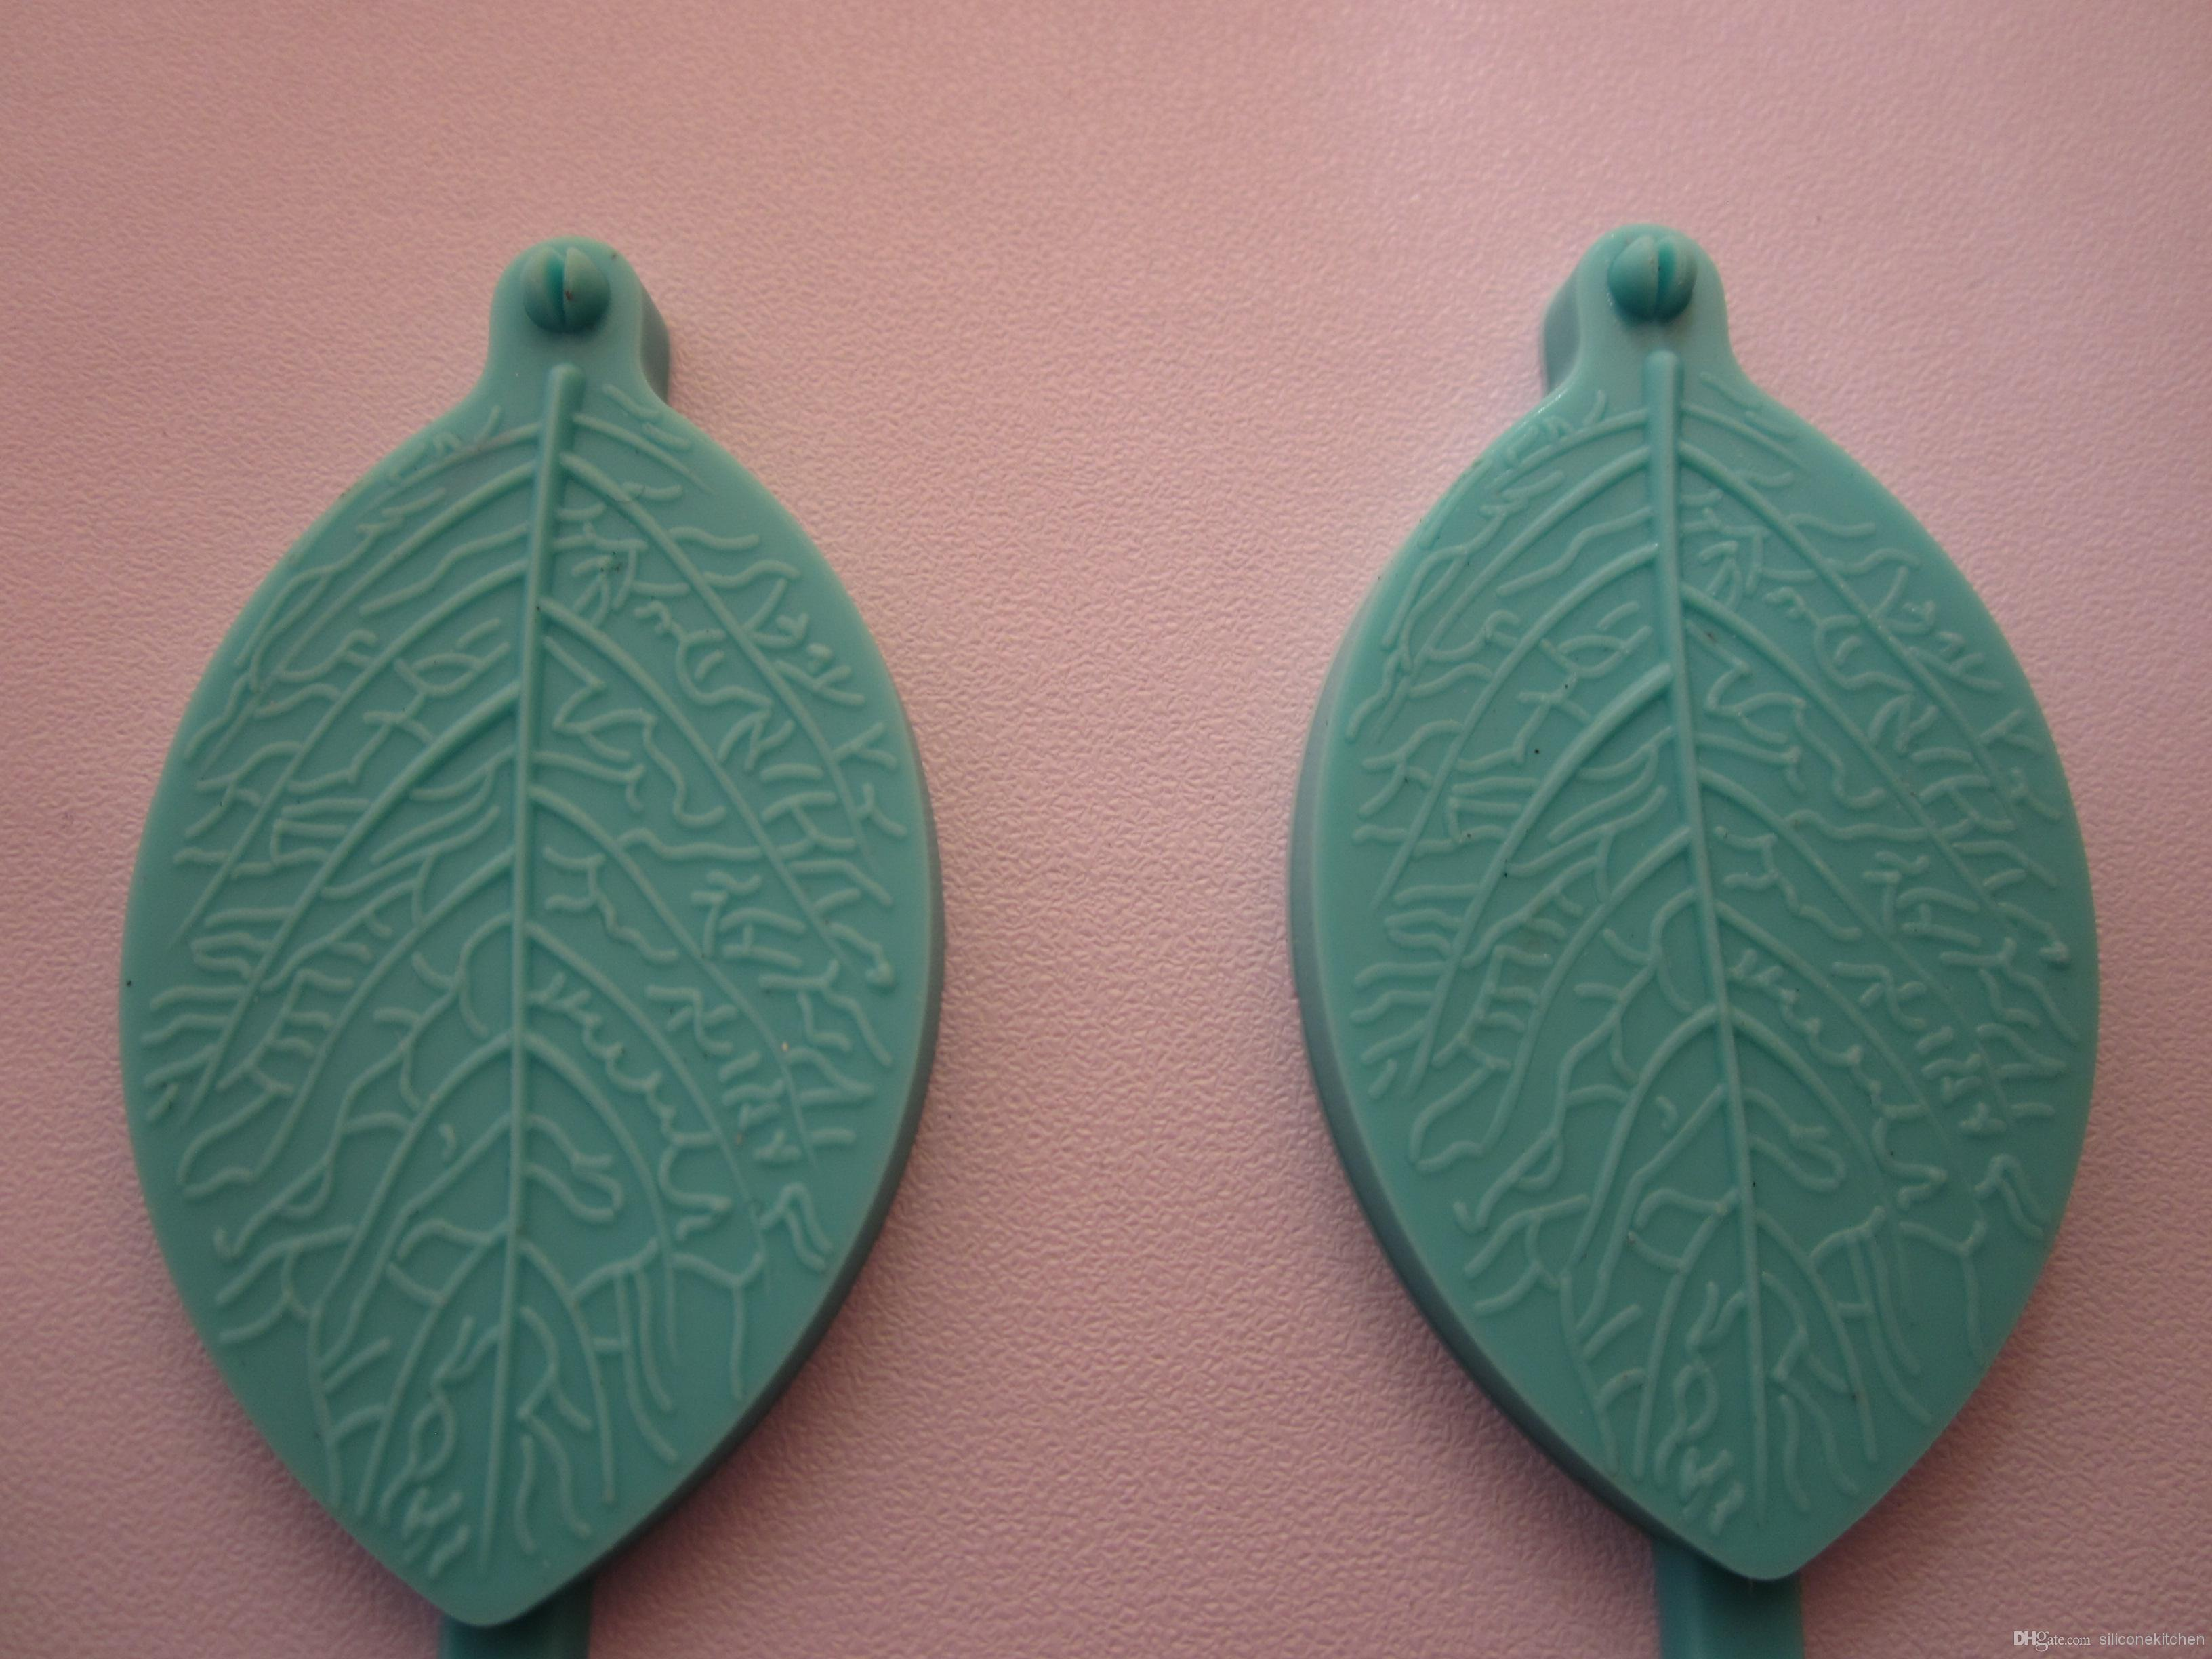 100% silicone leaves mould/fondant mould/cake decorating mould/cake decorative tools +